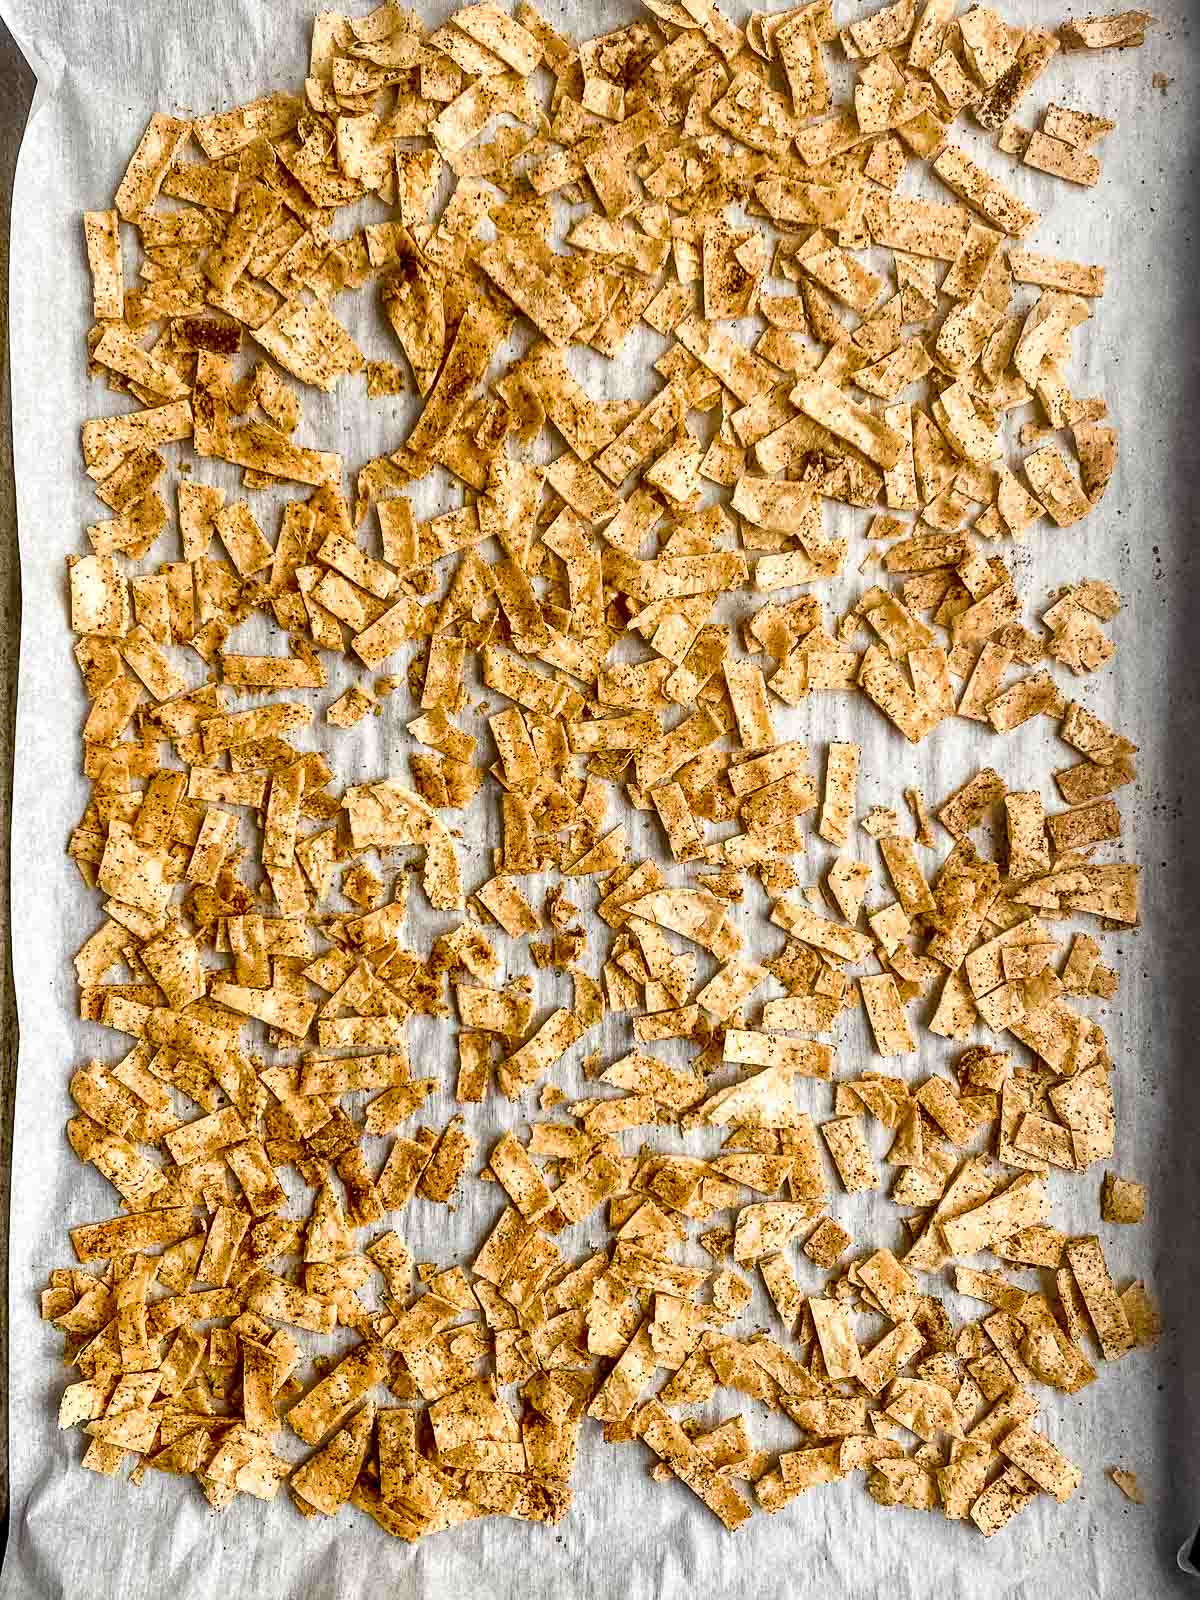 Baked and seasoned corn tortilla chips on a baking sheet lined with parchment paper